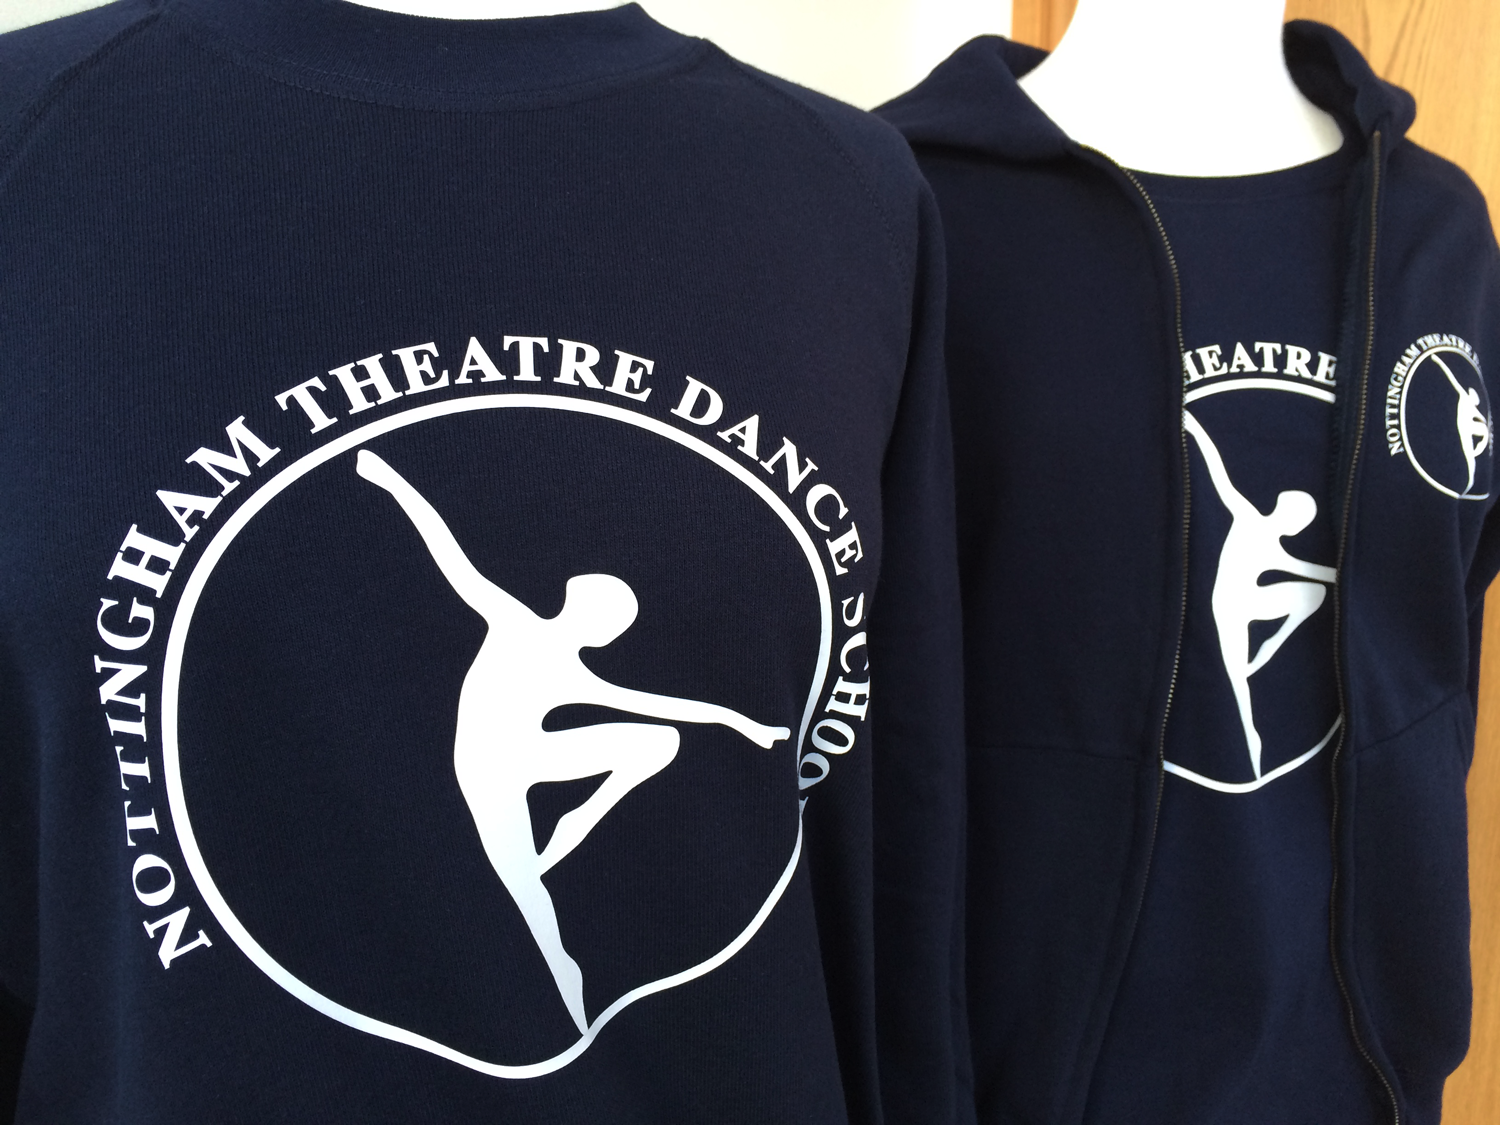 Printed Sweatshirts, T-shirts and Hoodies